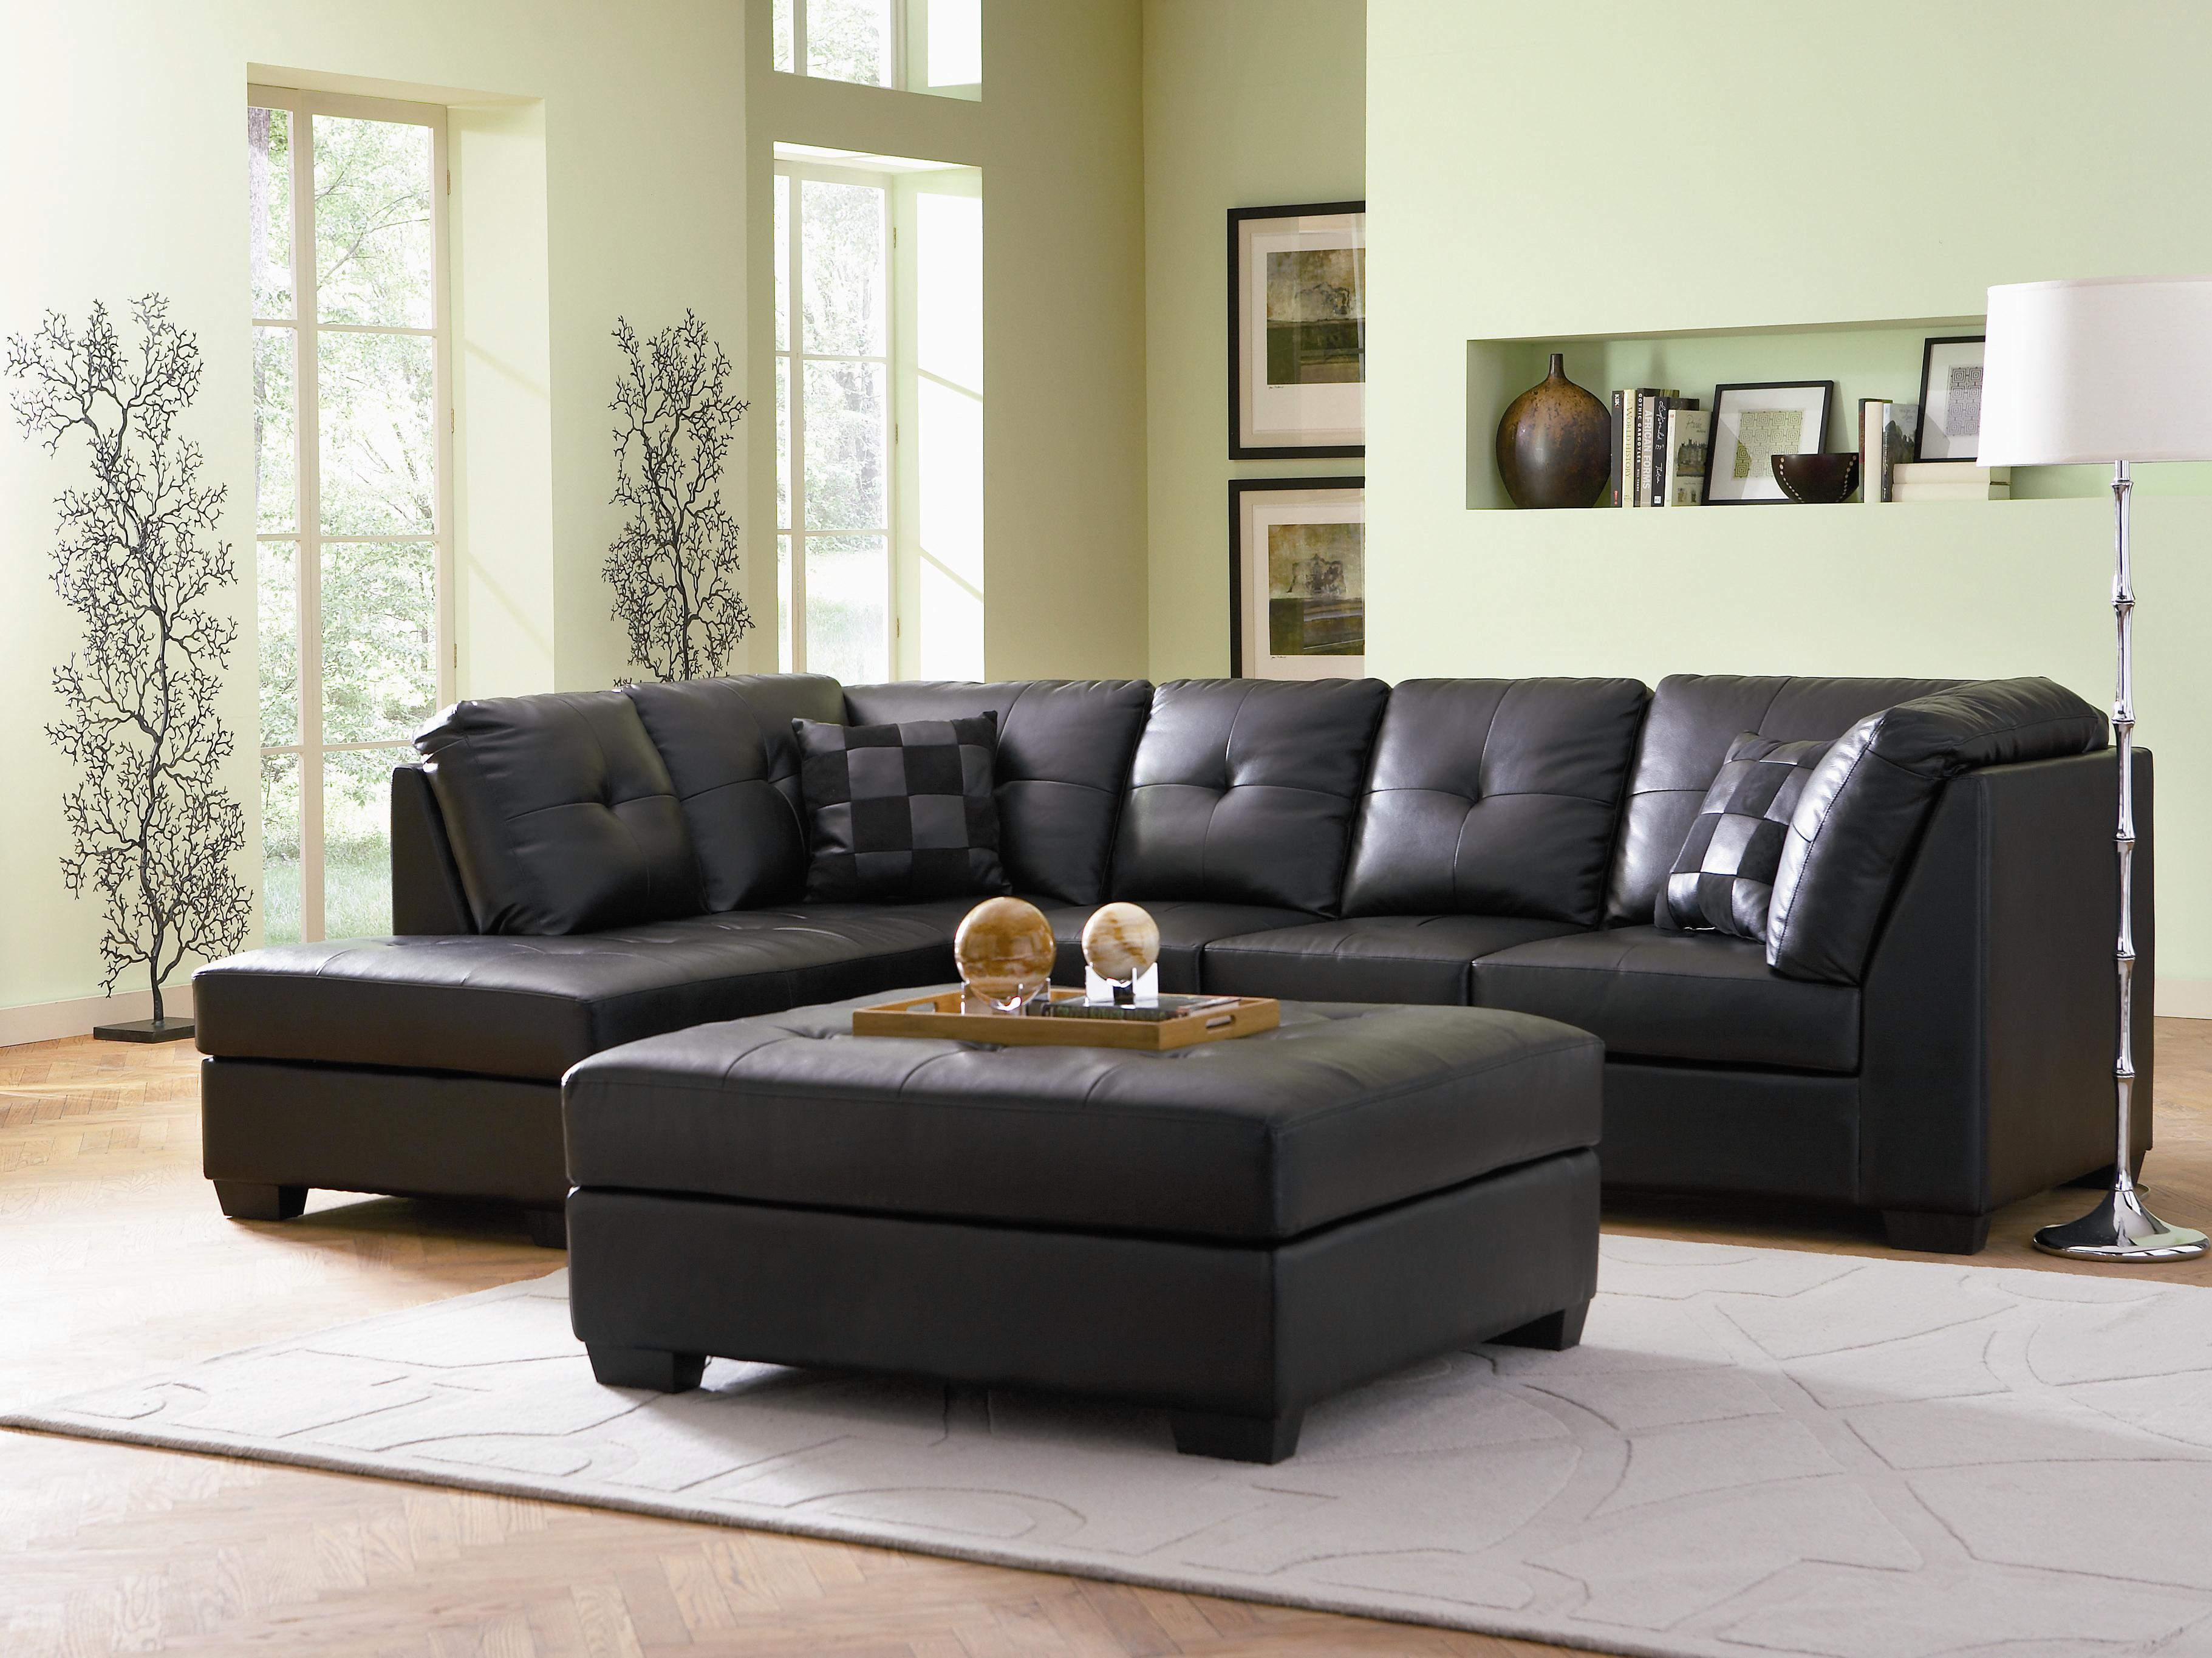 Best 35 Best Sofa Beds Design Ideas In Uk This Month